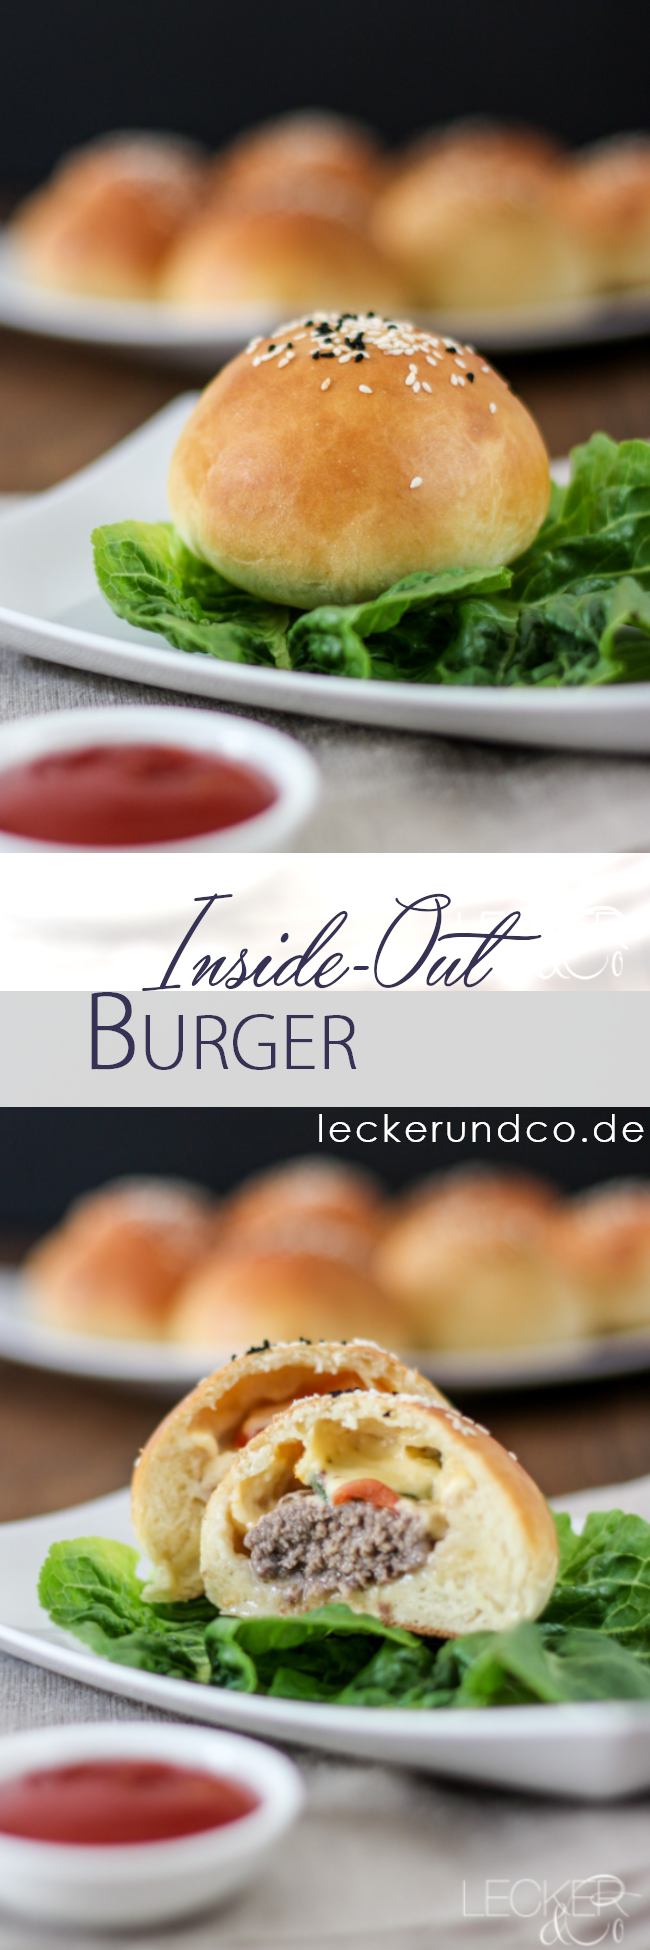 Inside Out Burger | Burger für unterwegs